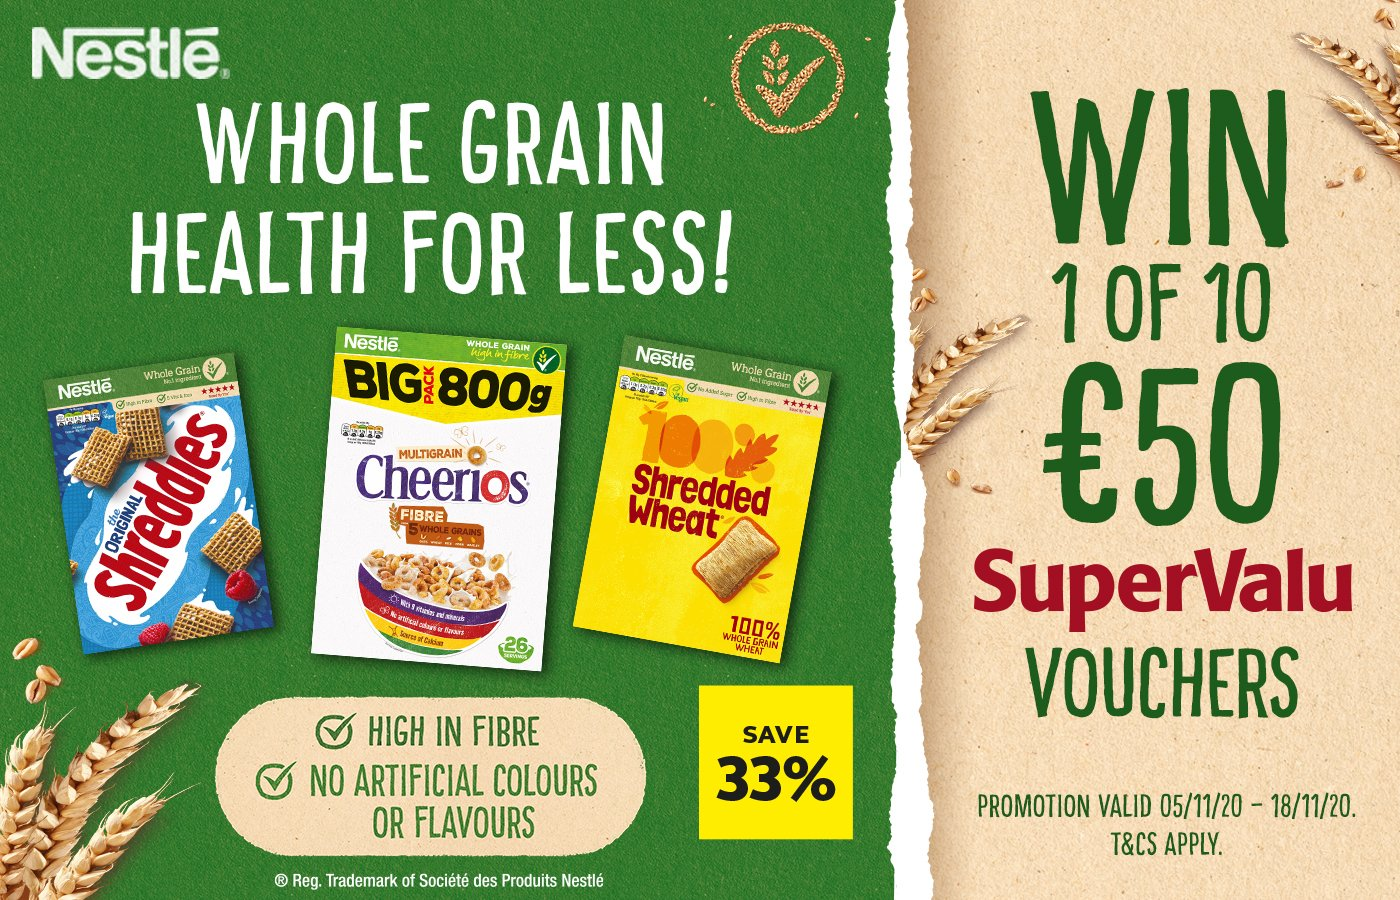 Win one of 10 SuperValu vouchers each worth €50